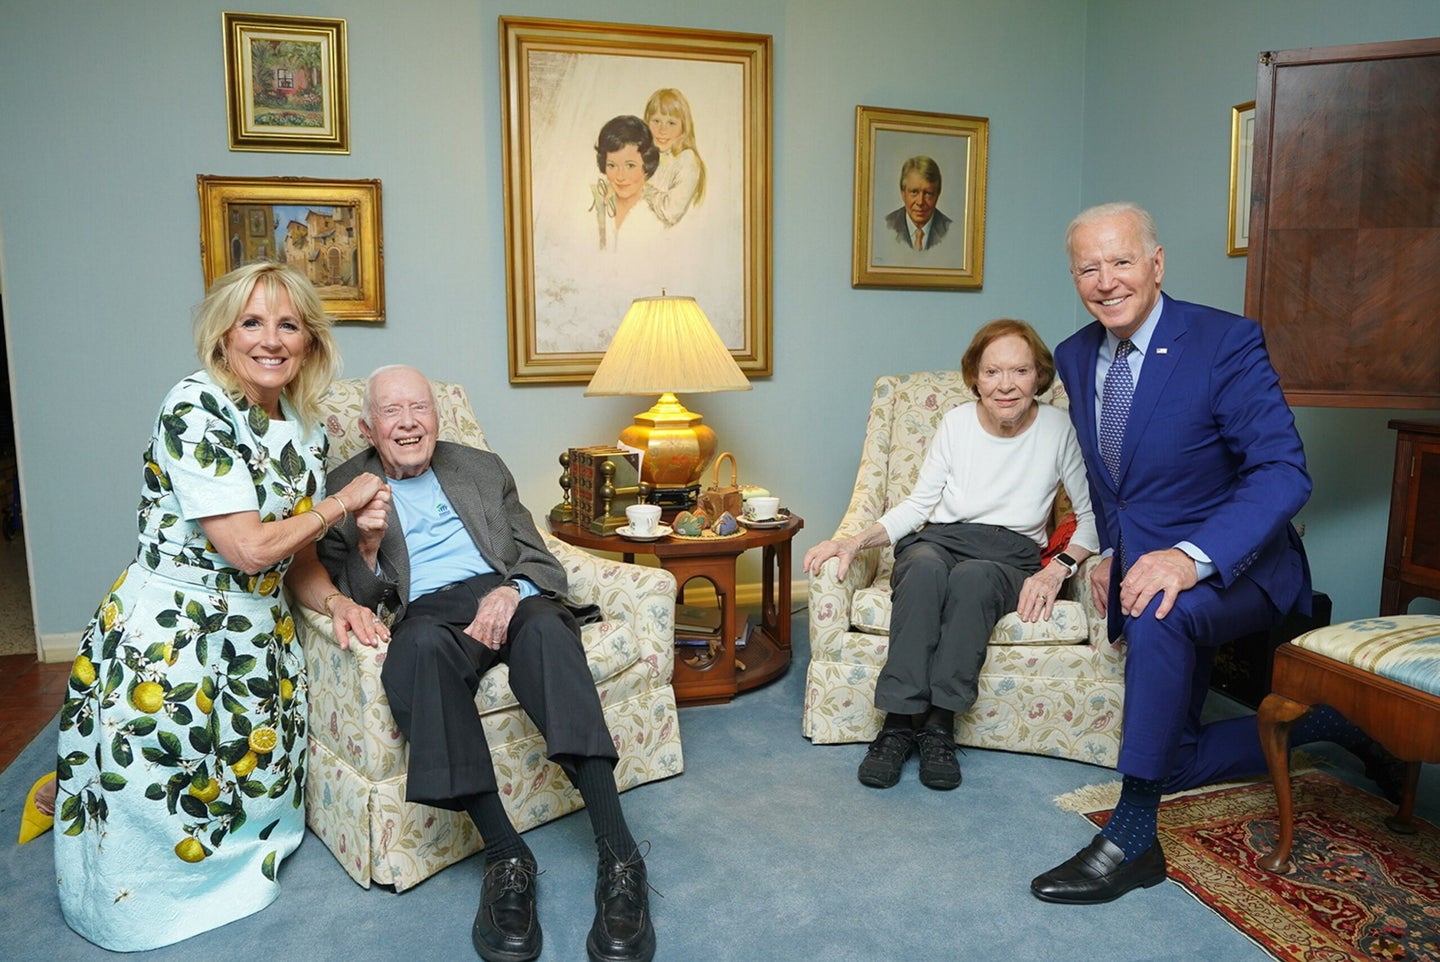 Bidens and the carters in a room